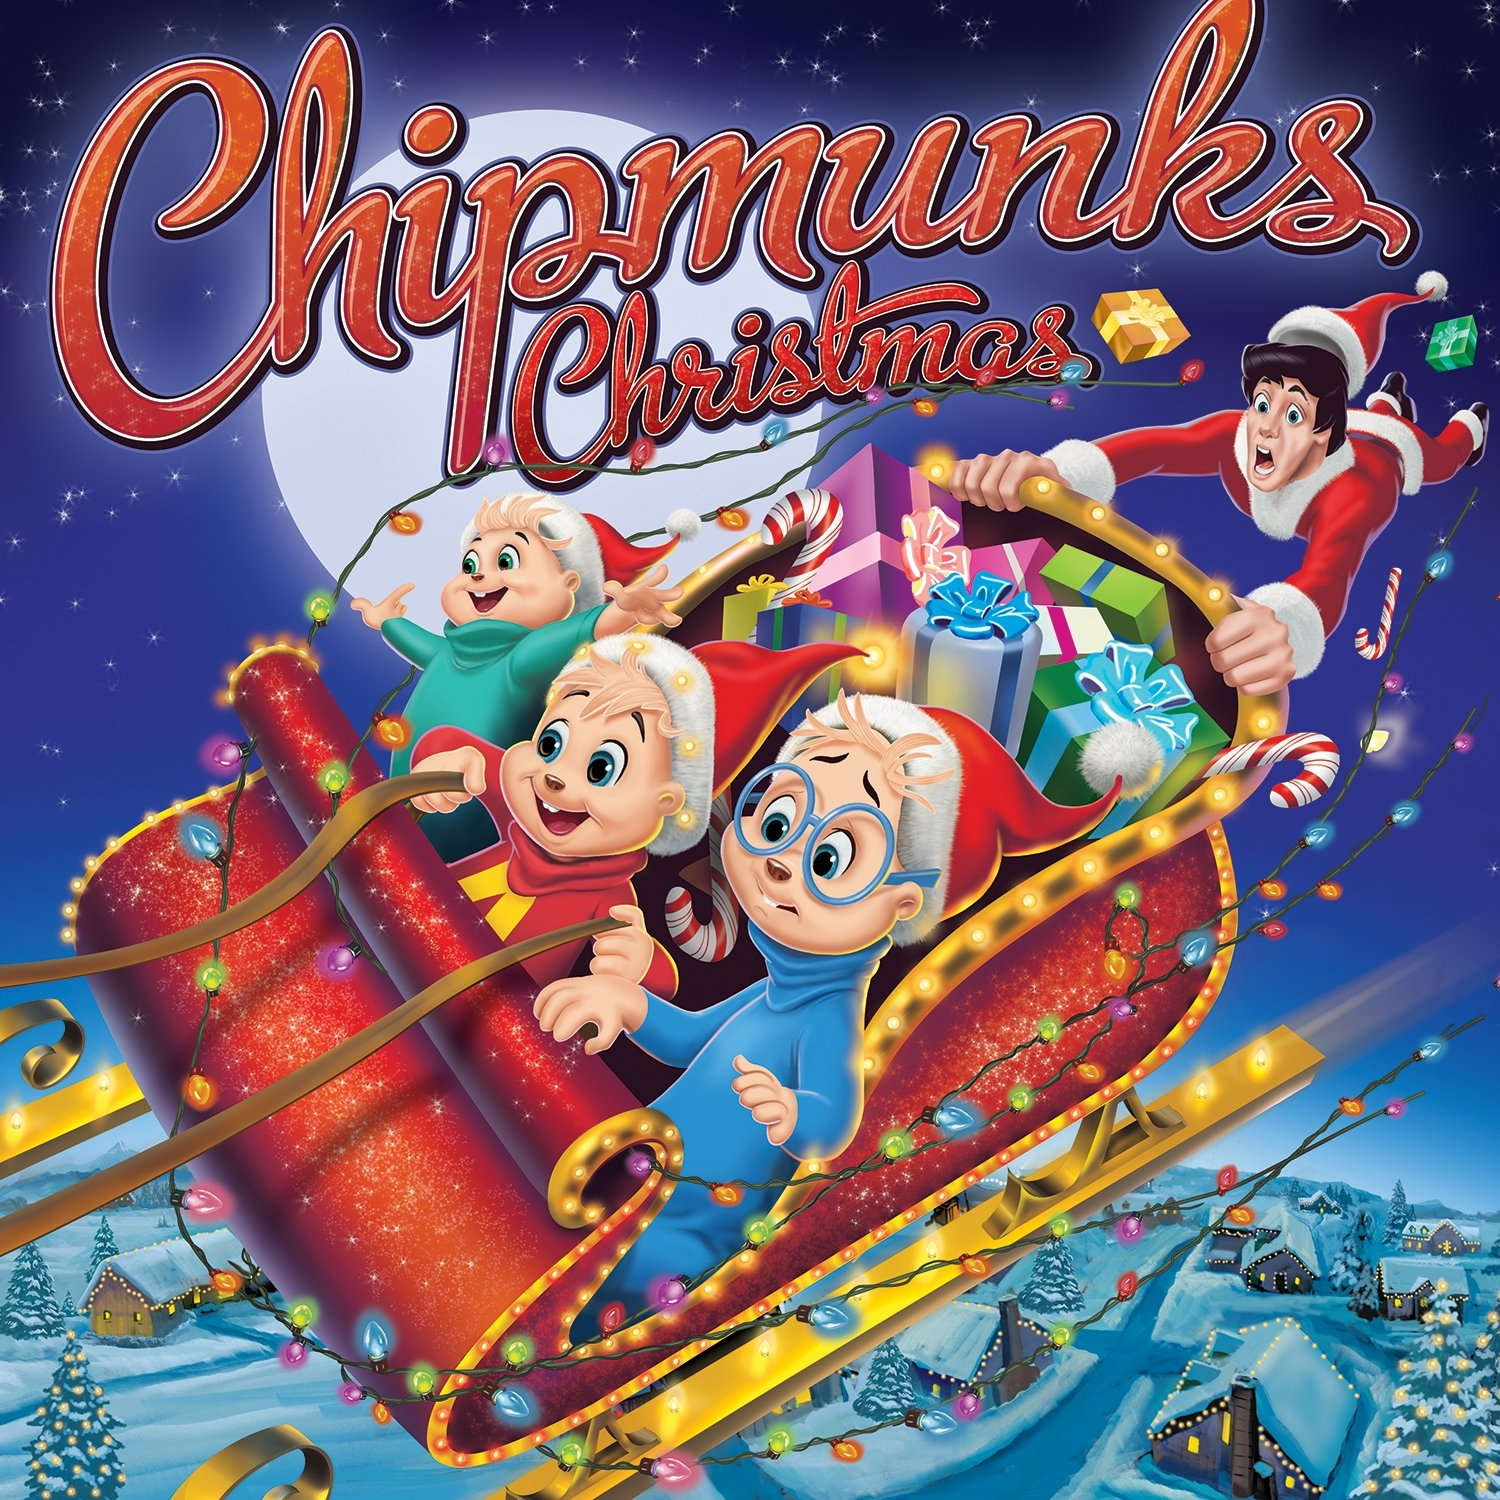 Alvin And The Chipmunks 2014 Chipmunks Christmas With Alvin